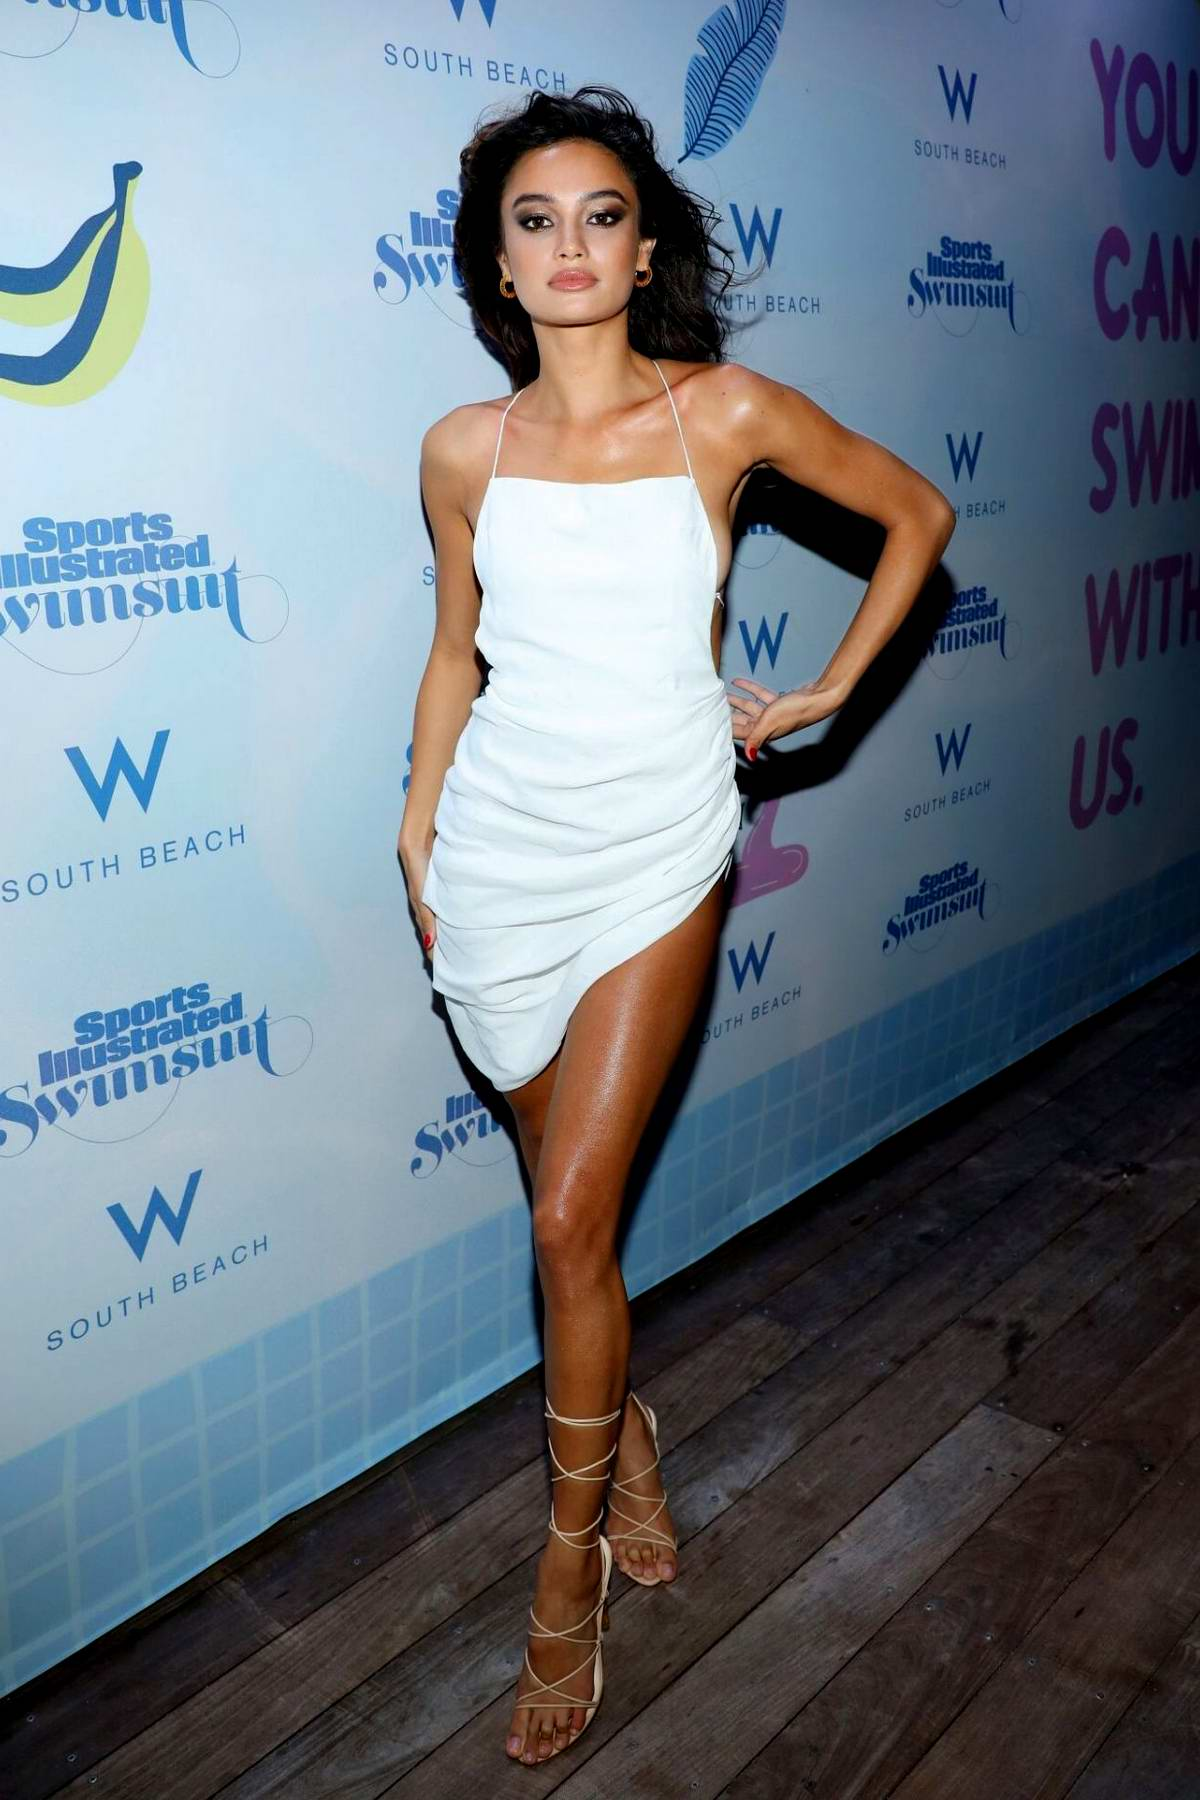 Kelsey Merritt attends the 2019 Sports Illustrated Swimsuit Runway Show at Miami Swim Week in Miami, Florida